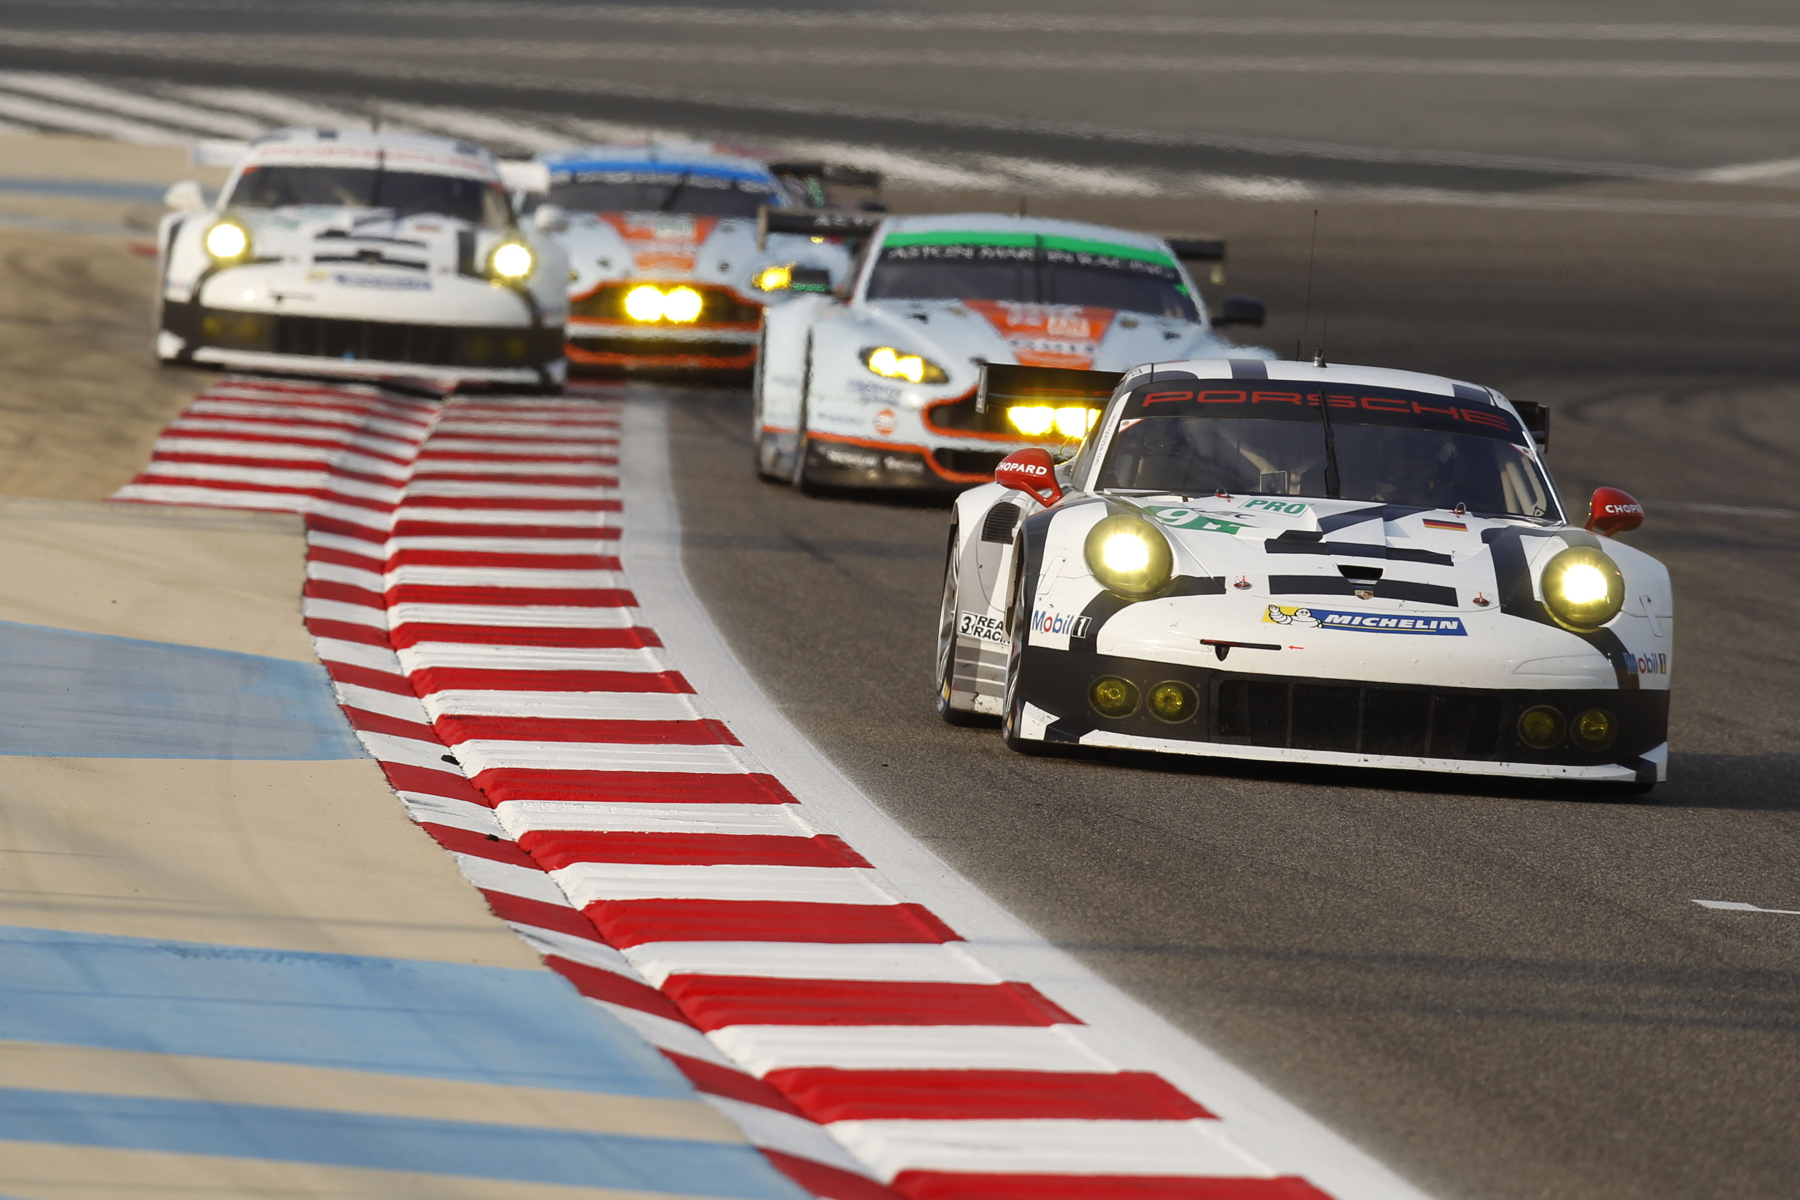 Another frenetic season of FIA WEC action comes to a close this weekend, with Aston Martin able to influence the direction of the 2014 manufacturers' title.